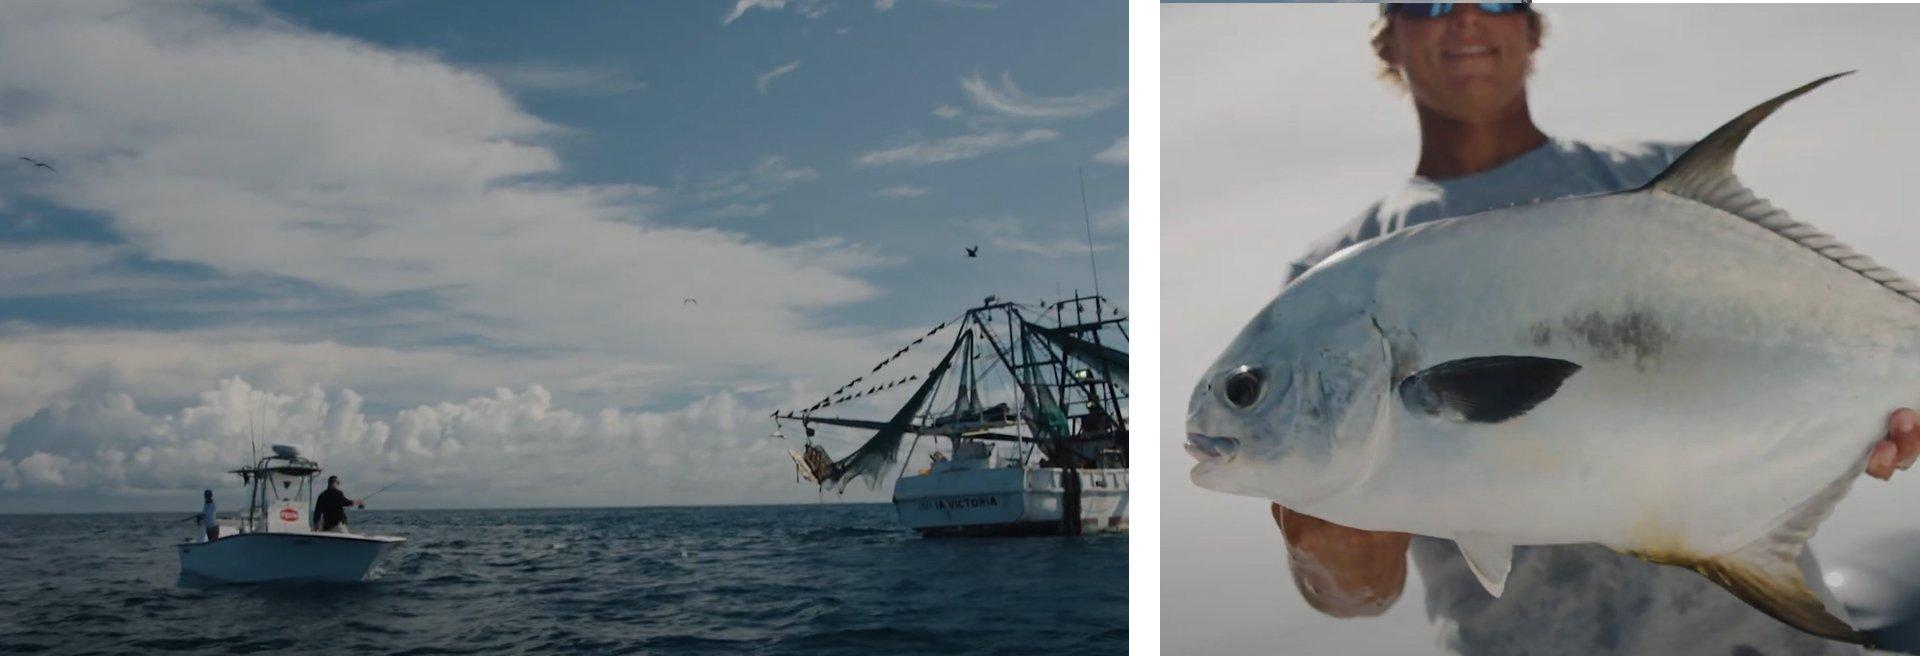 Left: Two anglers in Penn branded boat with larger vessel in front of them; Right: angler holding catch